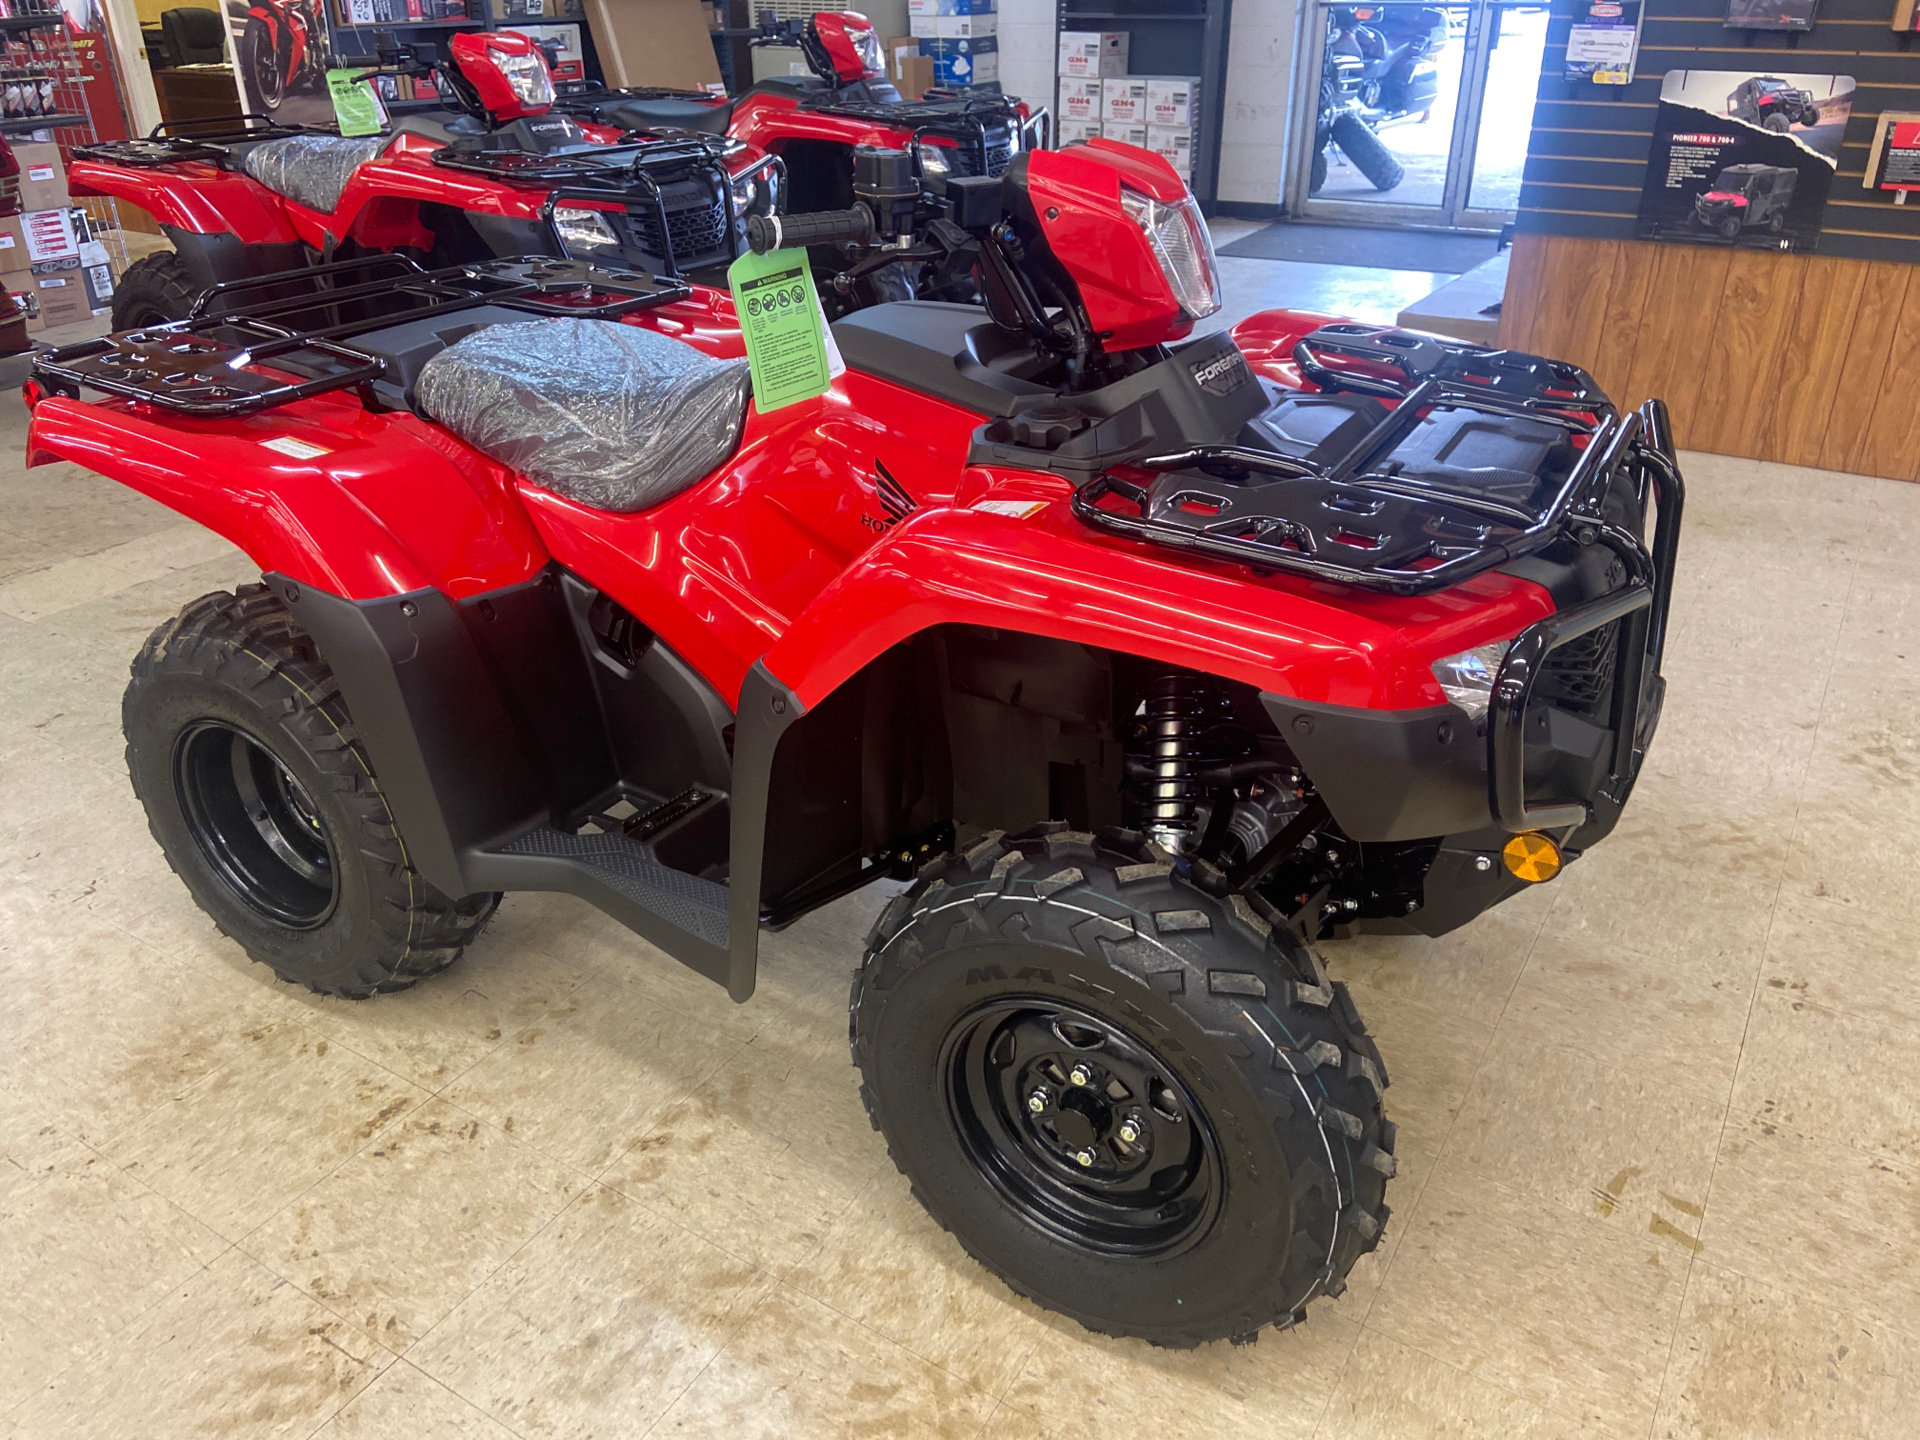 2021 Honda FourTrax Foreman 4x4 in Greeneville, Tennessee - Photo 1